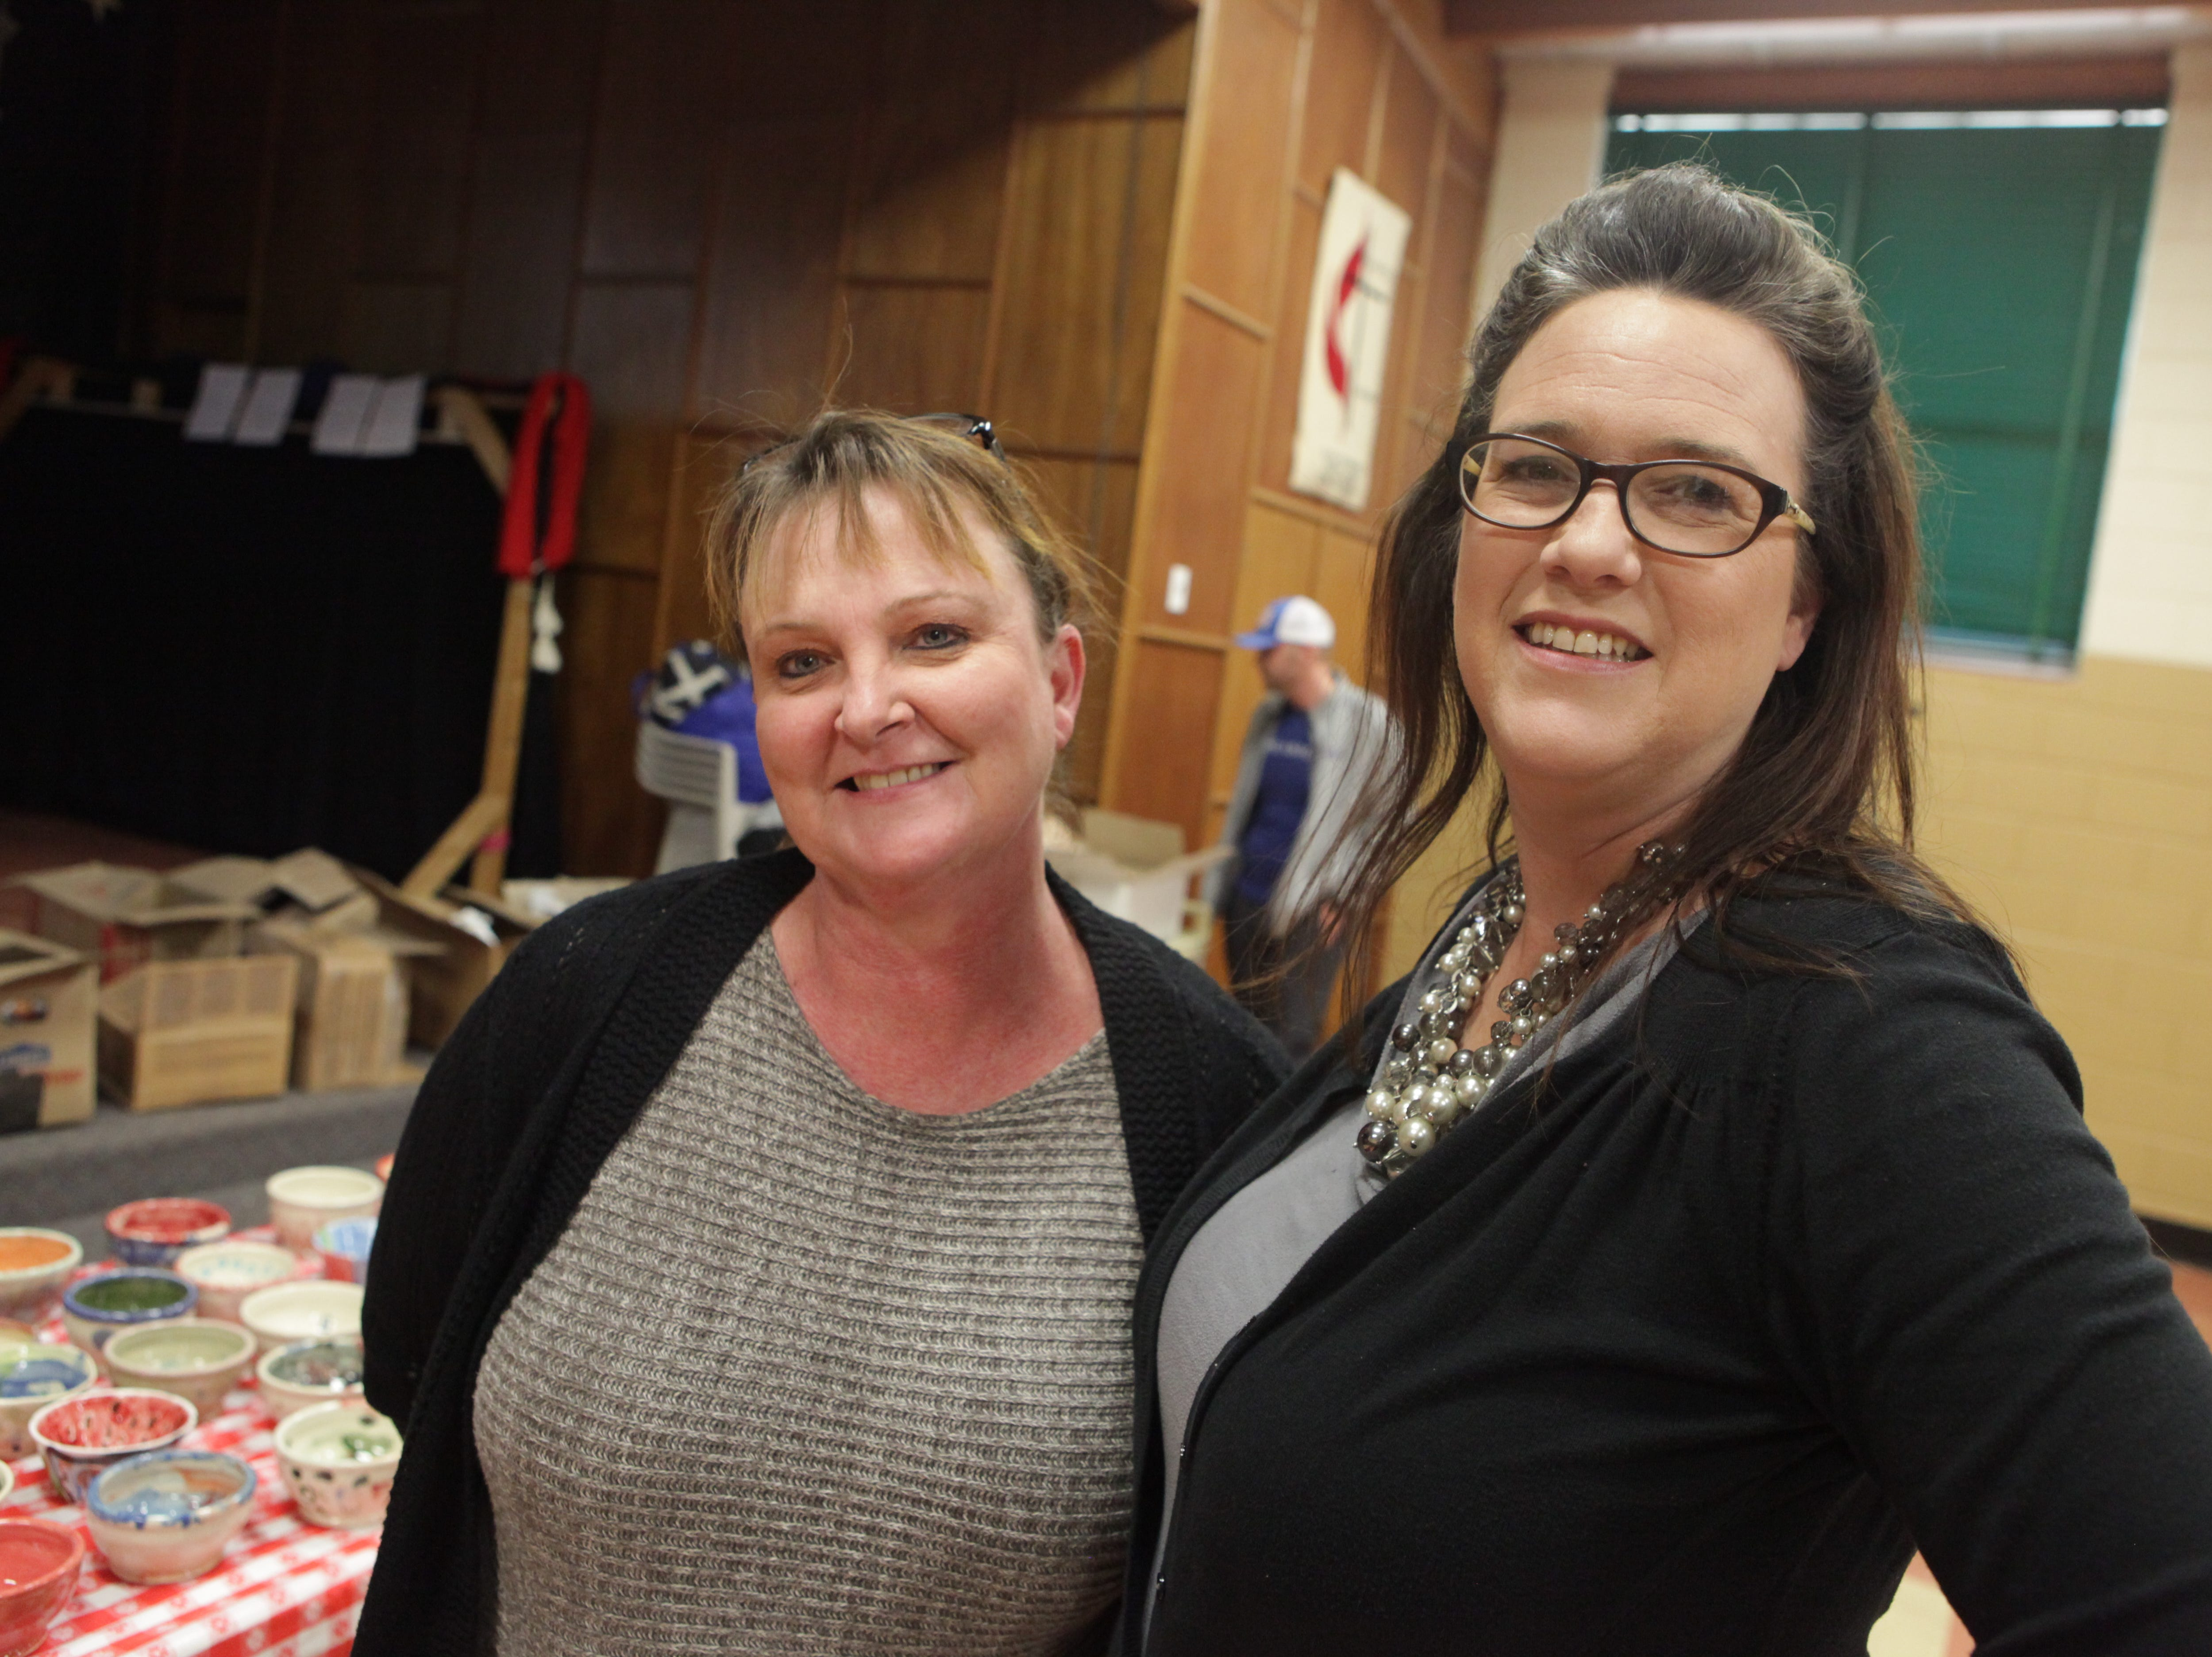 Rebecca Lopez and C. C. Carmack smile during Empty Bowls 2019 at New Providence United Methodist Church.